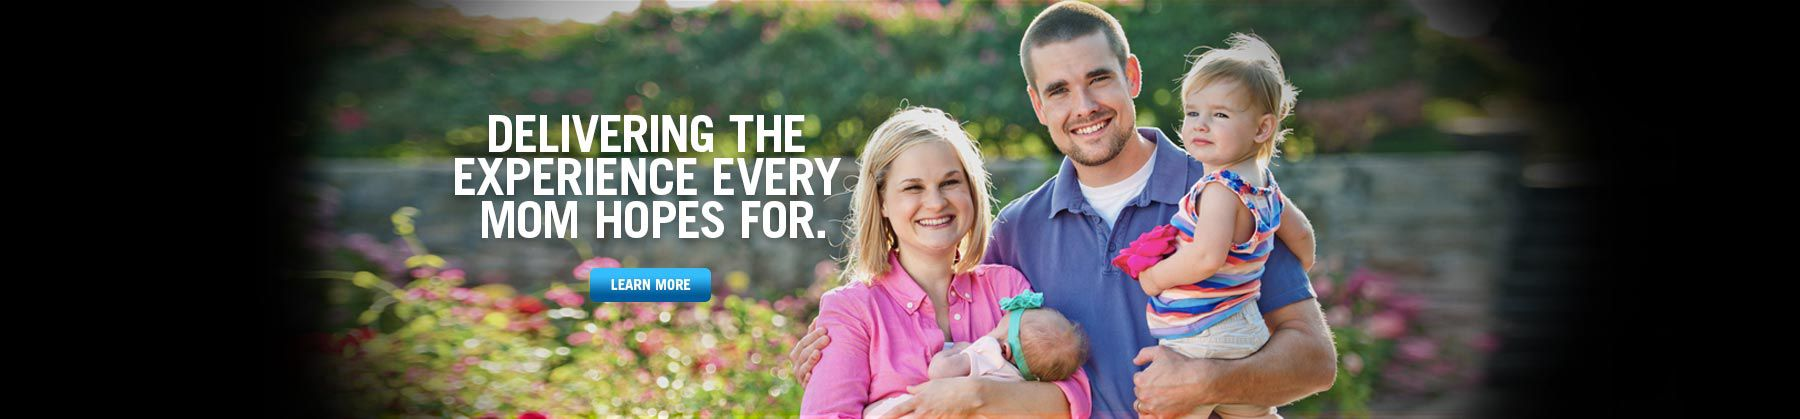 Delivering the Experience Every Mom Hopes For